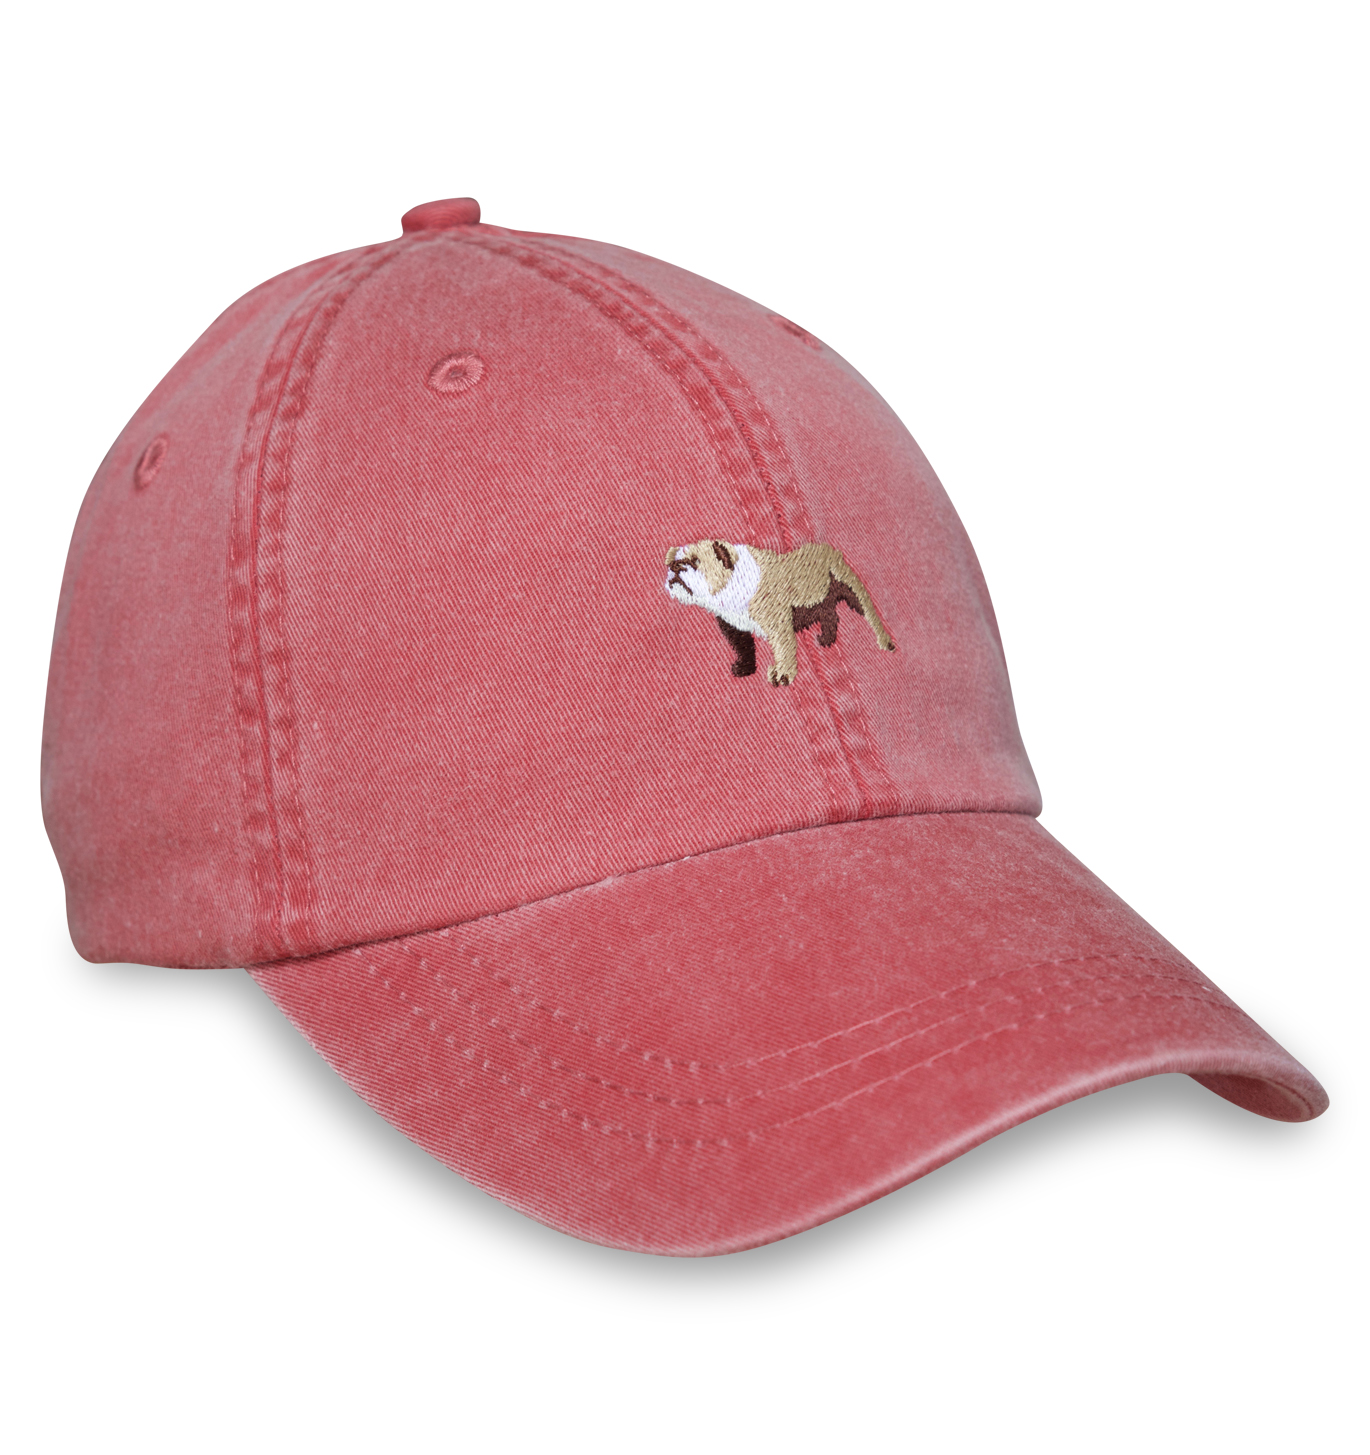 Bulldog Sporting Cap - Red - Bird Dog BayBird Dog Bay 8e9e771e4c9